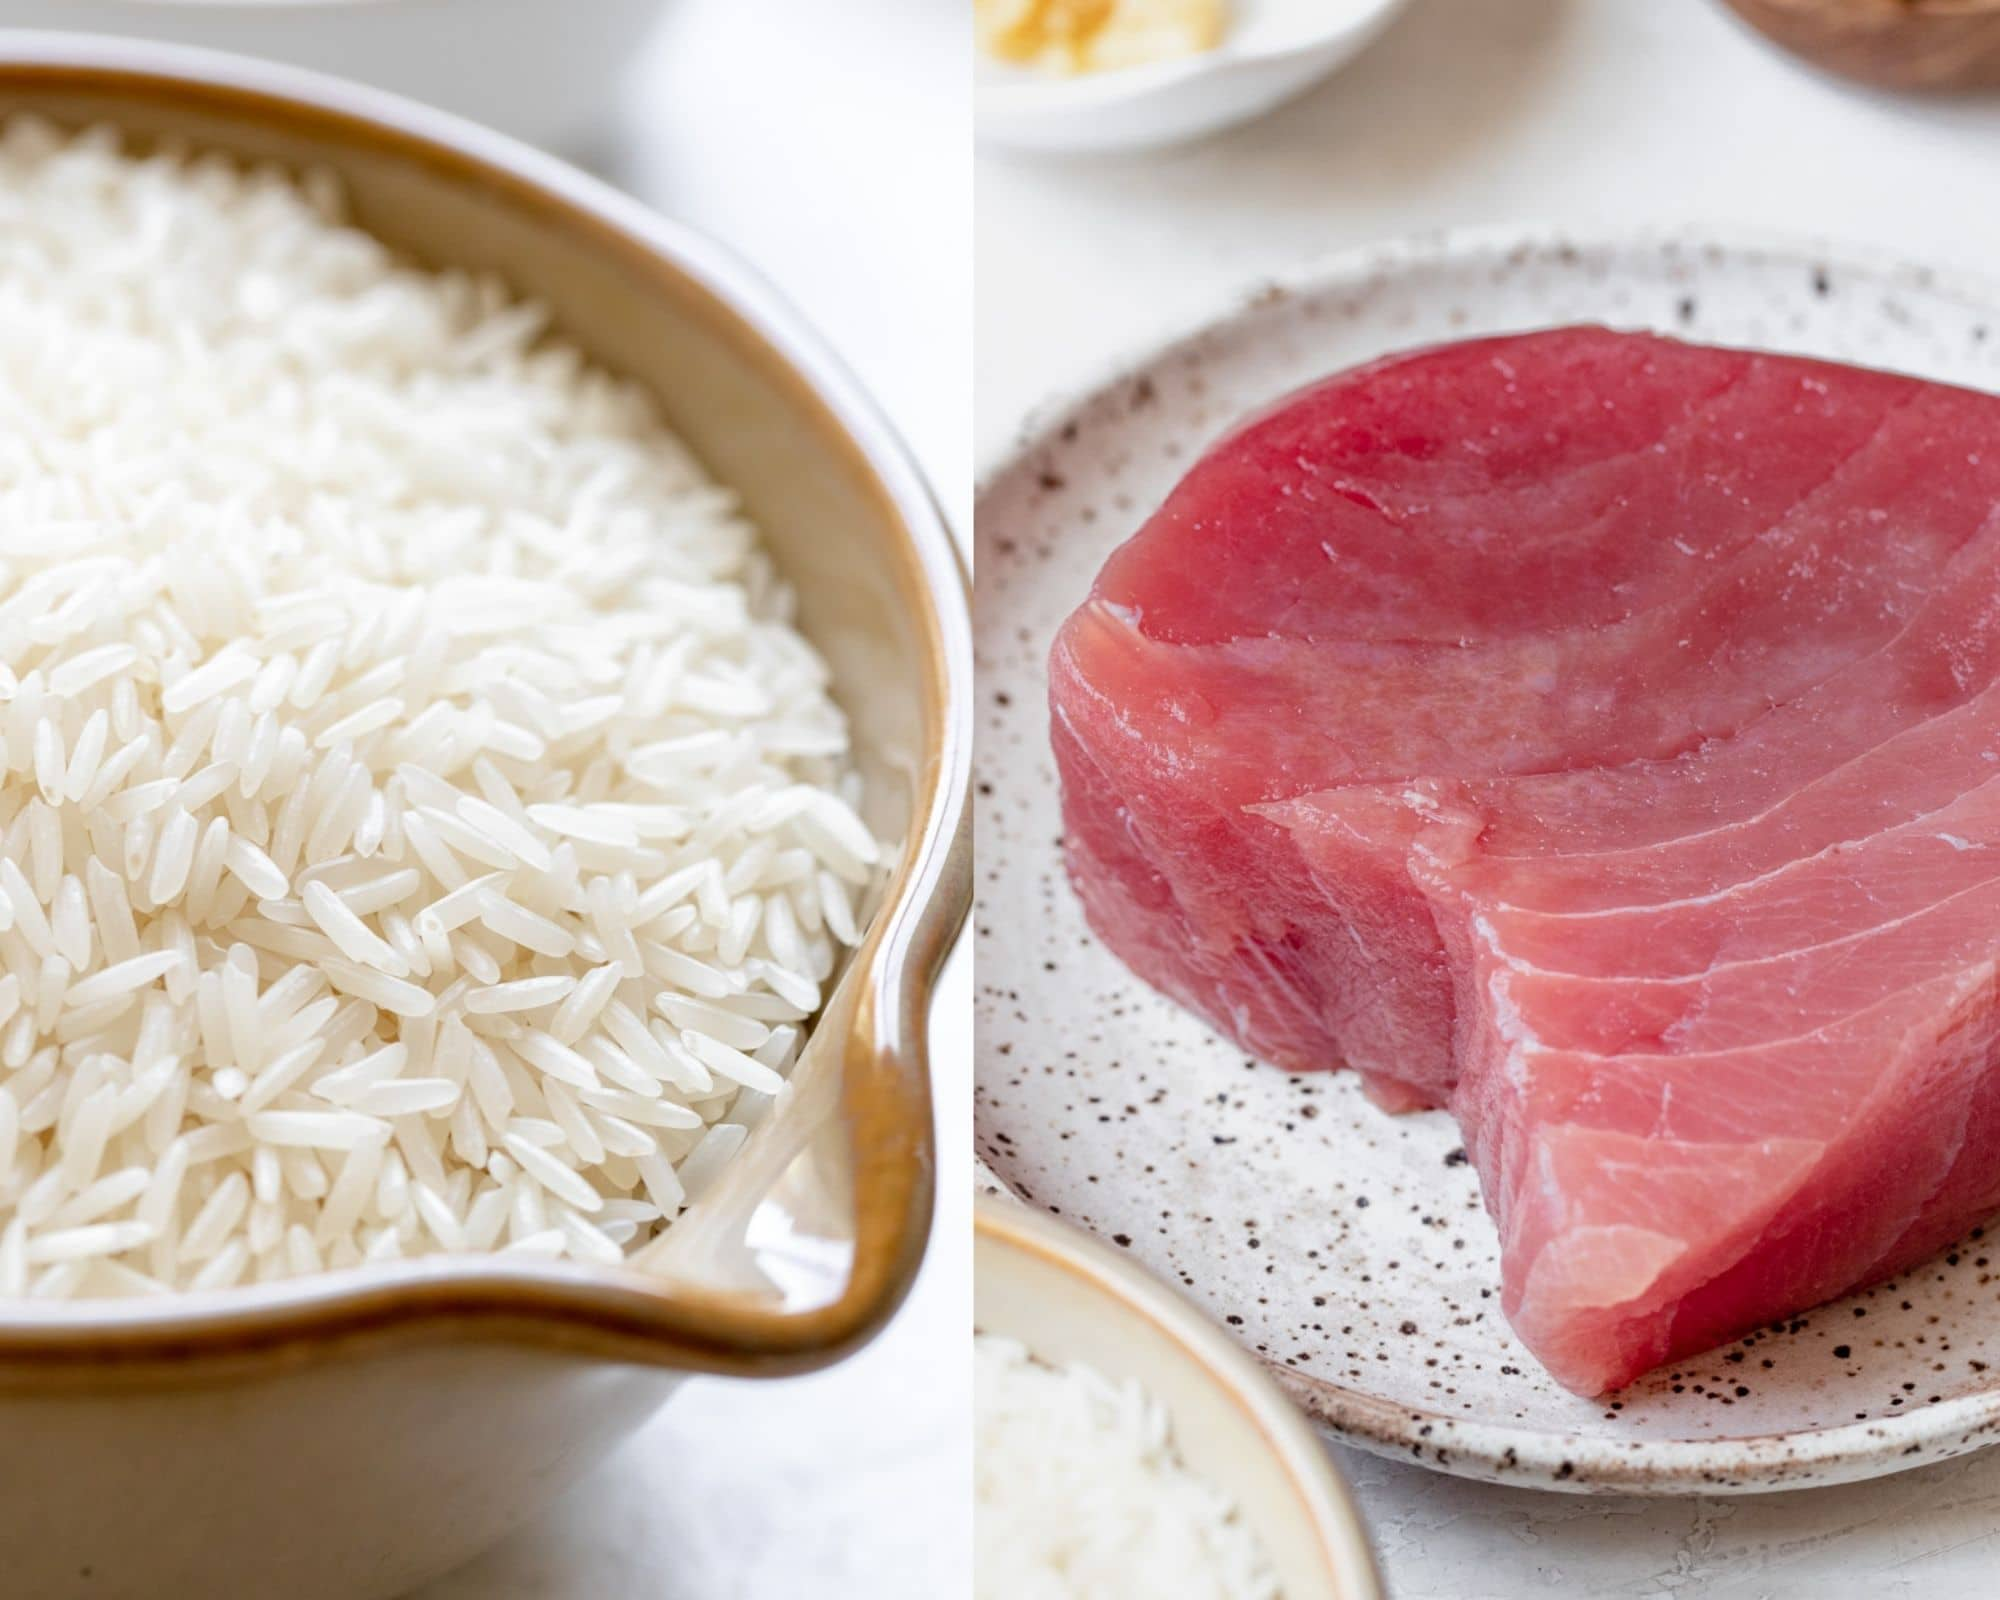 ahi on a plate and rice in a brown bowl